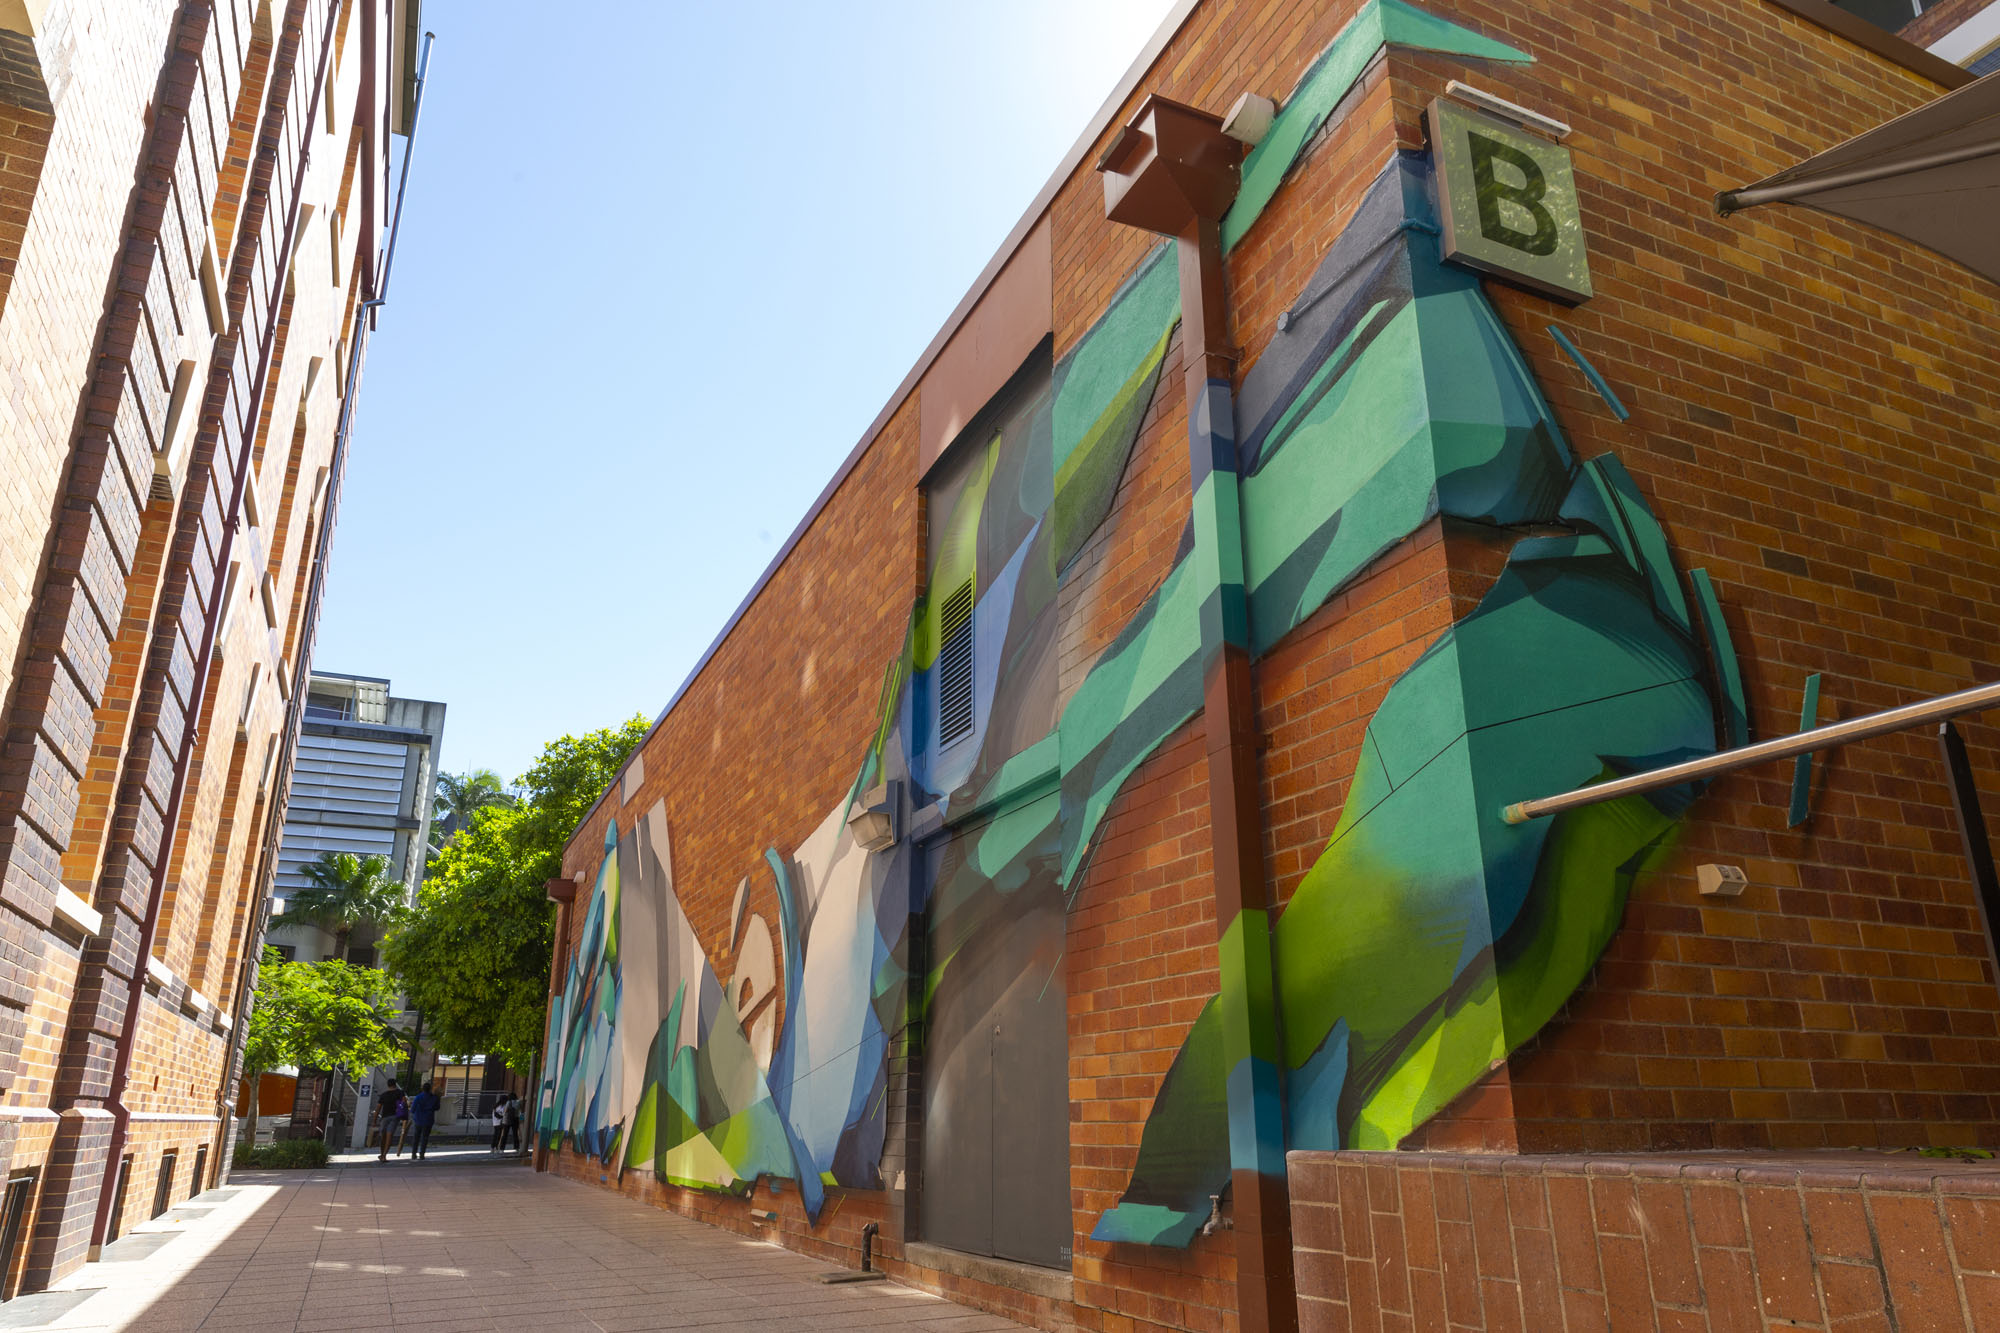 A work by Does - 201905-DOES-QUT-Brisbane_LukeShirlaw_IMG_0917